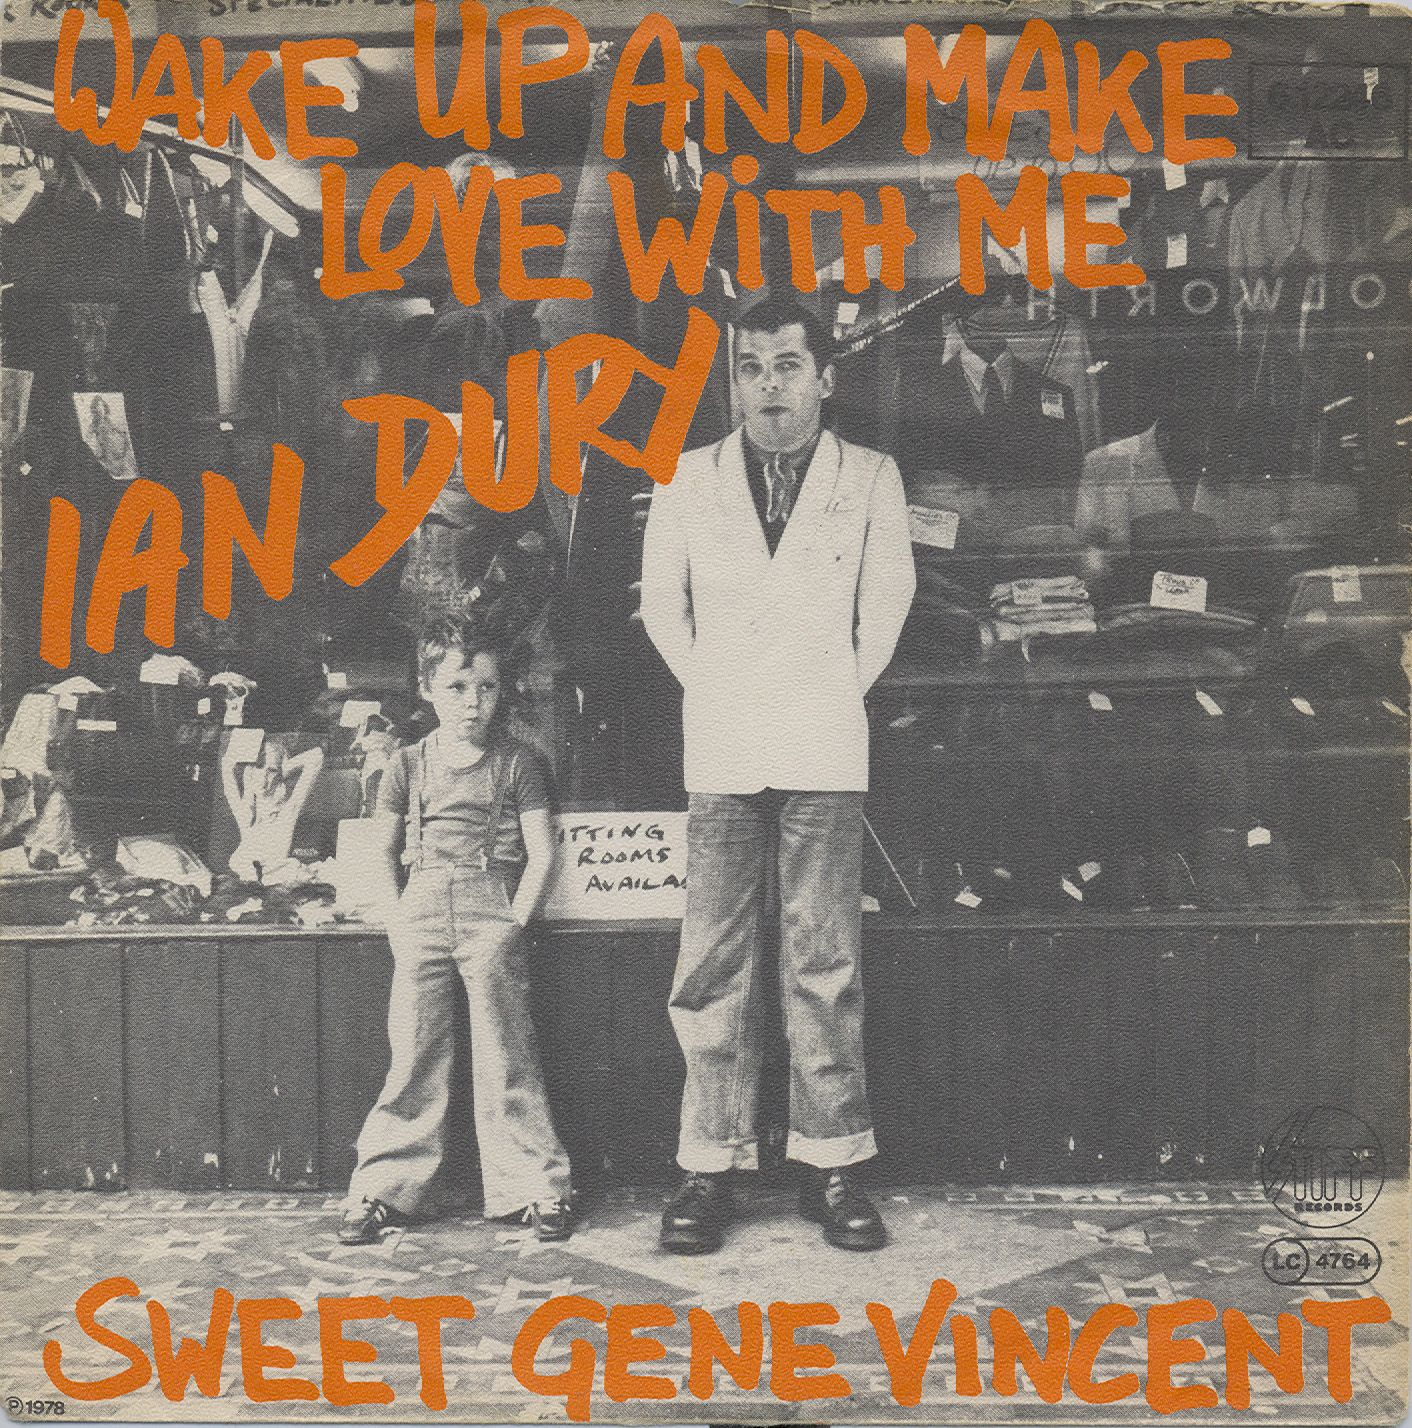 Ian dury wake up and make love with me 1978 stiff 612 246 ian dury wake up and make love with me 1978 stiff 612 246 solutioingenieria Image collections